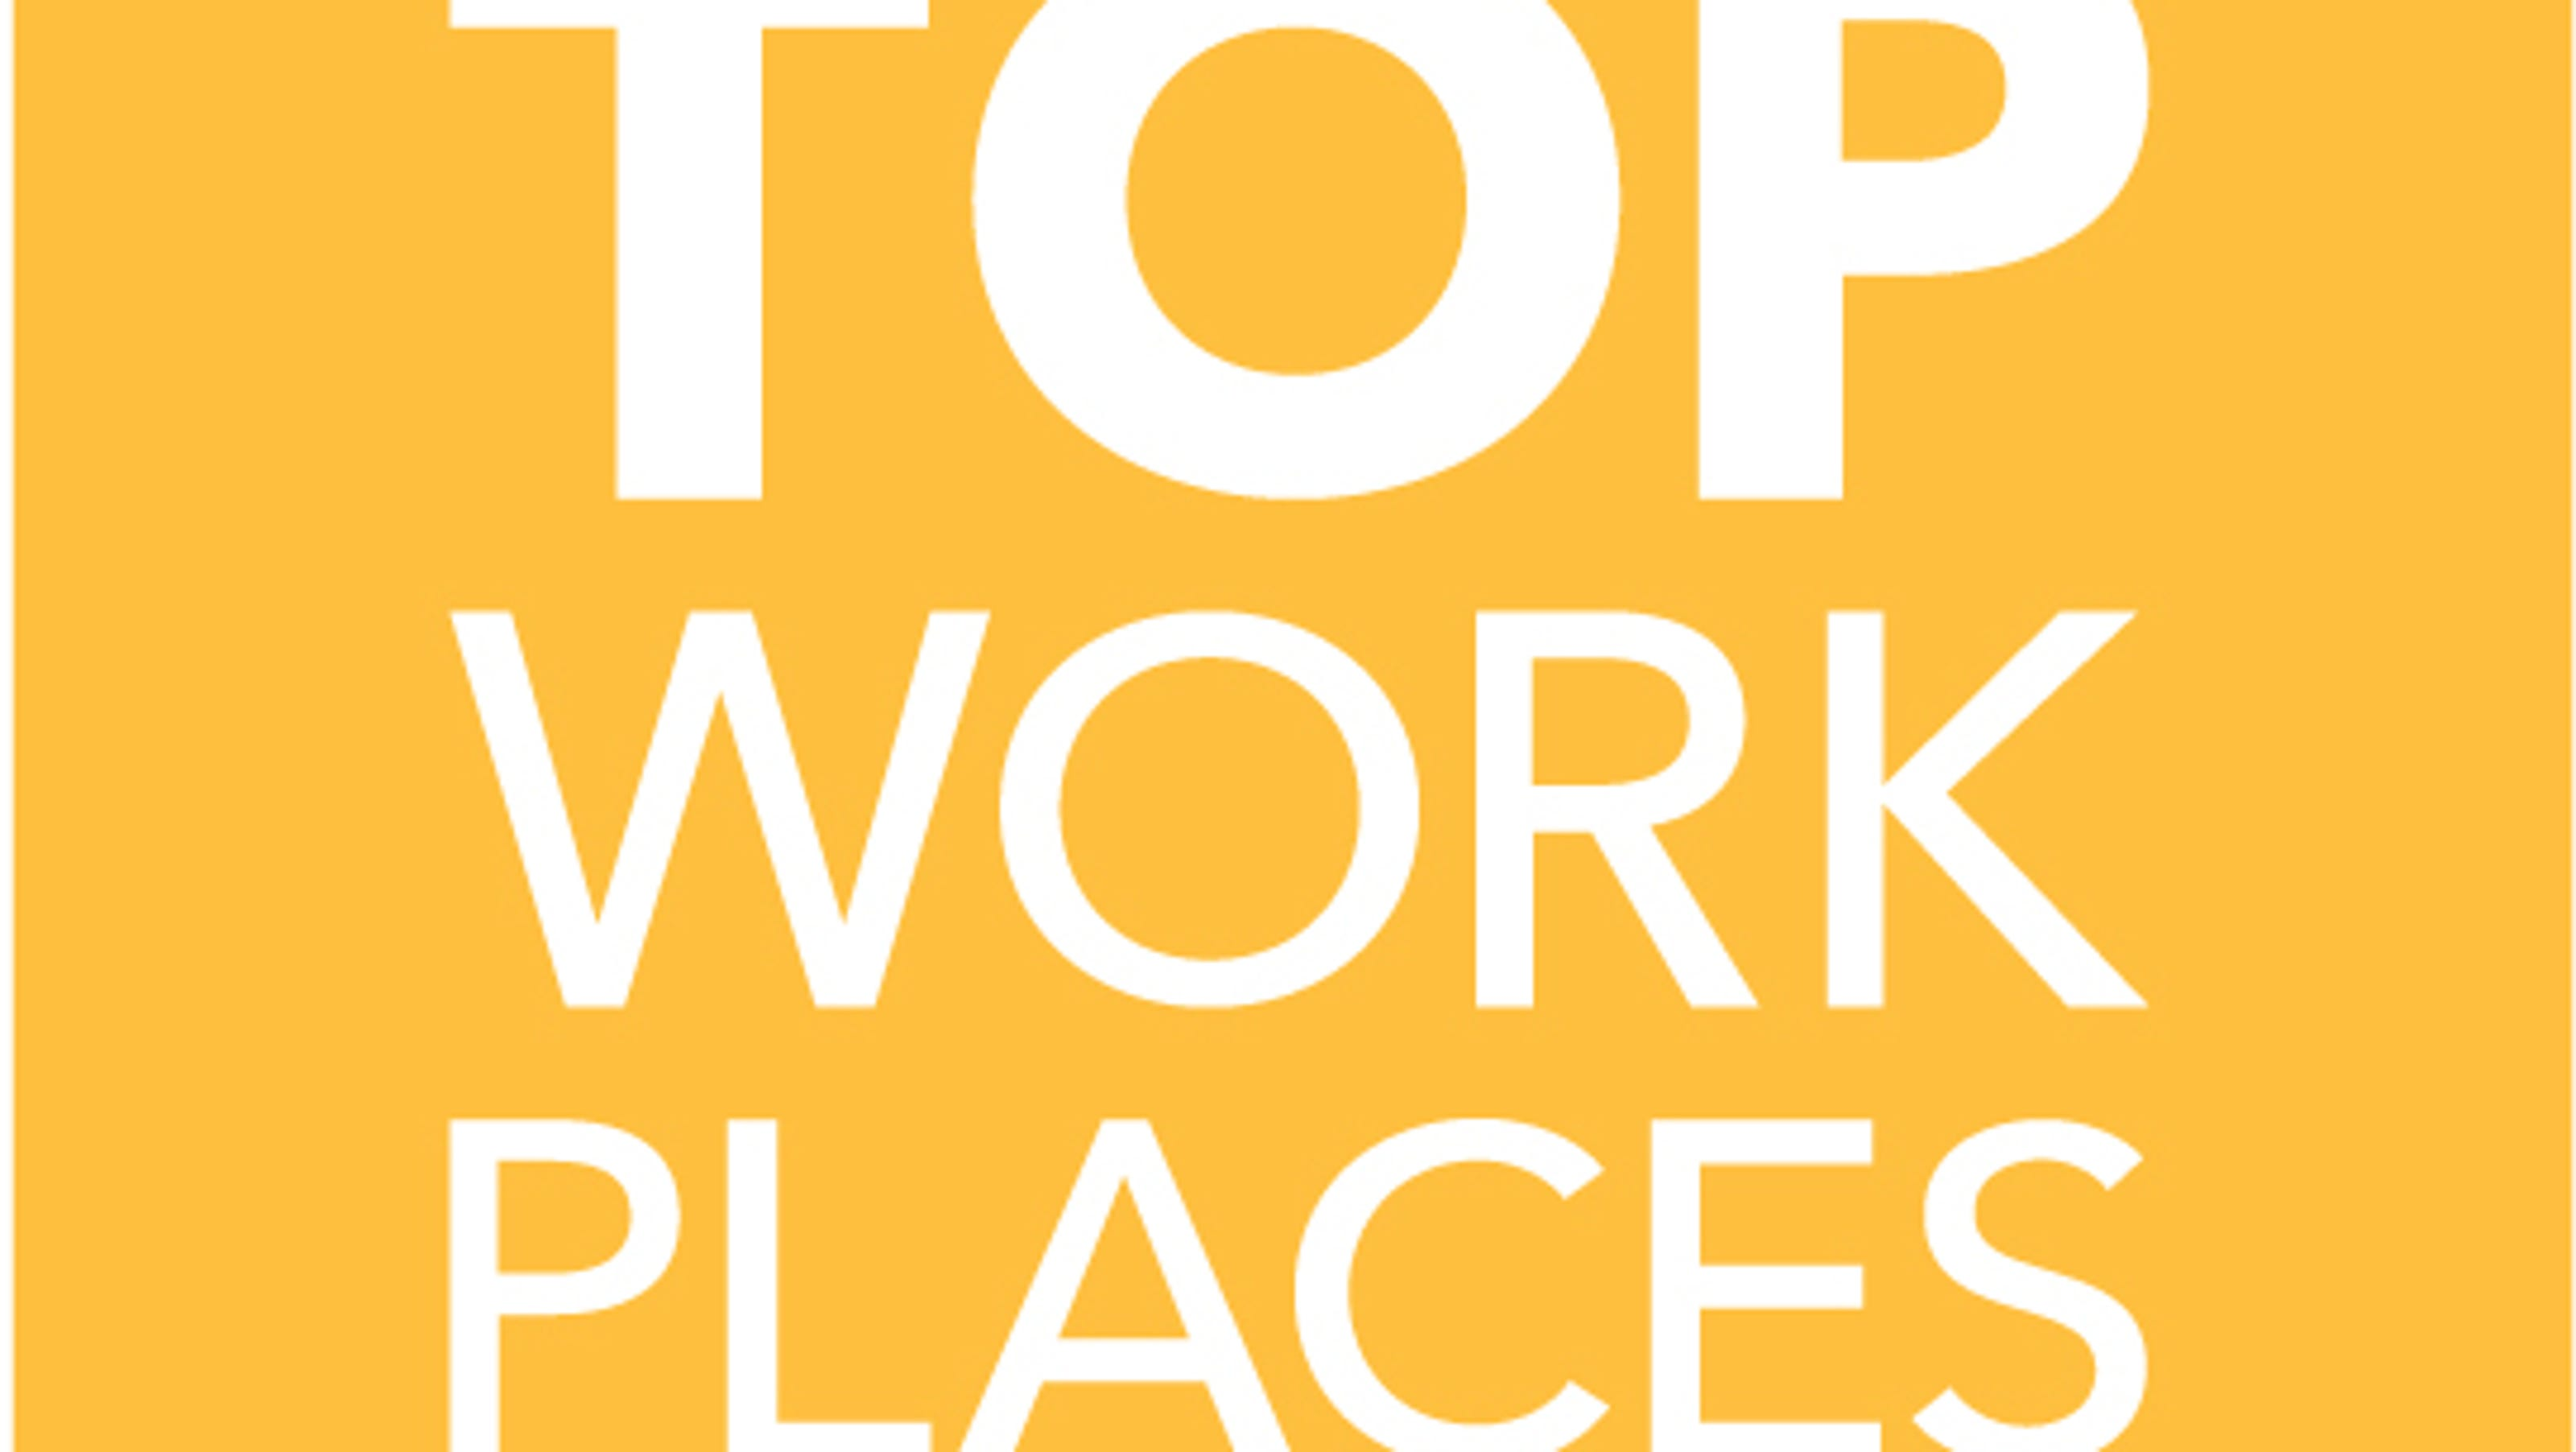 Iowa Top Workplaces 2018 Nomination Period Opens